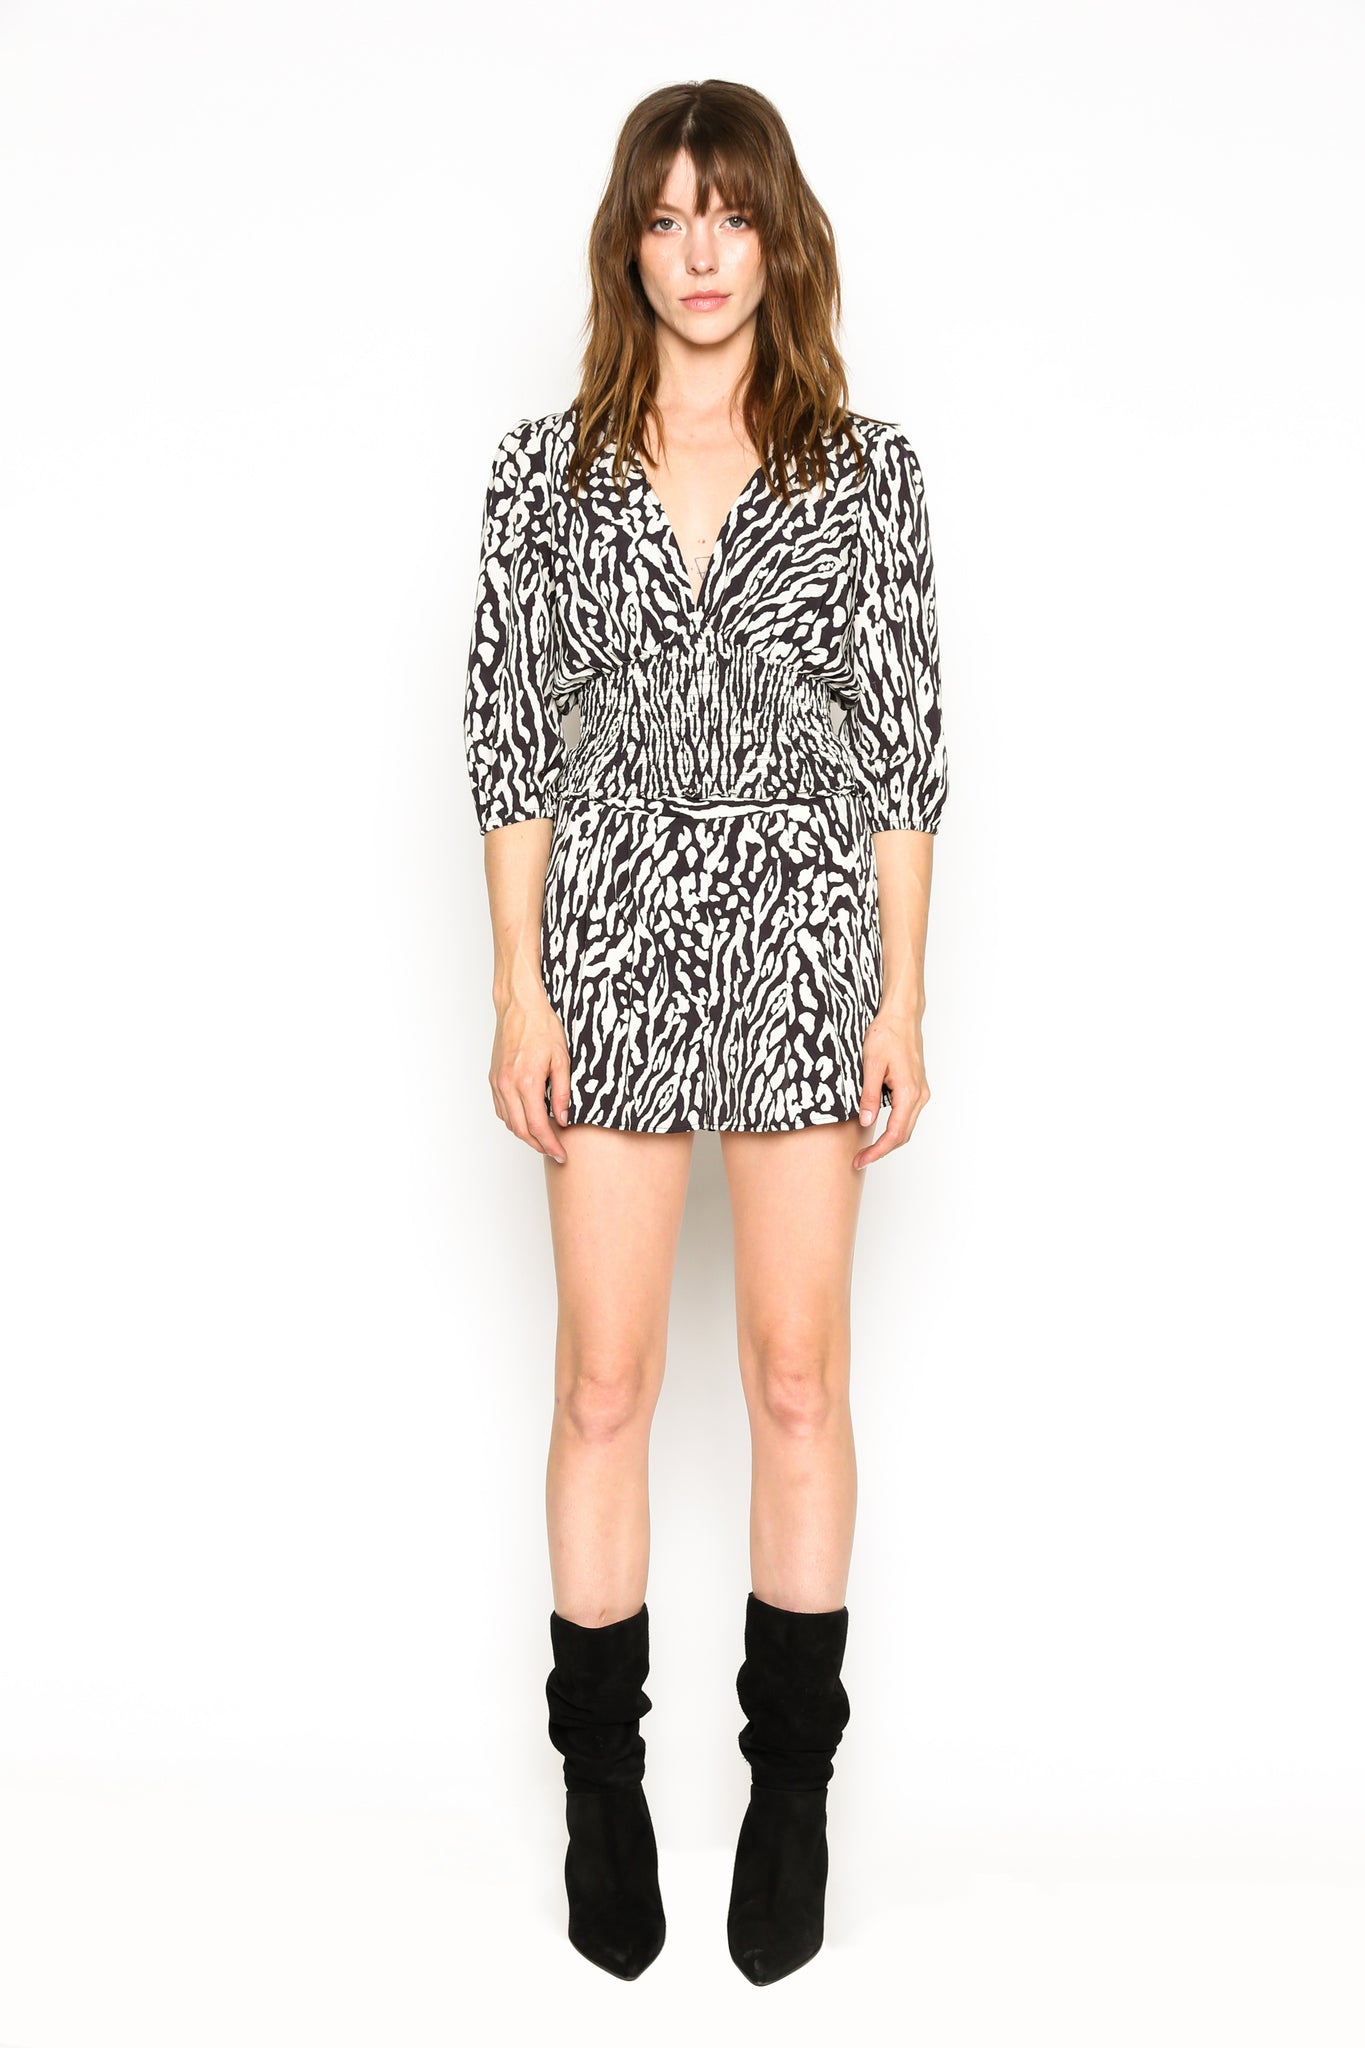 Lenon Collection.Baby Twill Blk/White Animal Print Smocking hem V neckline